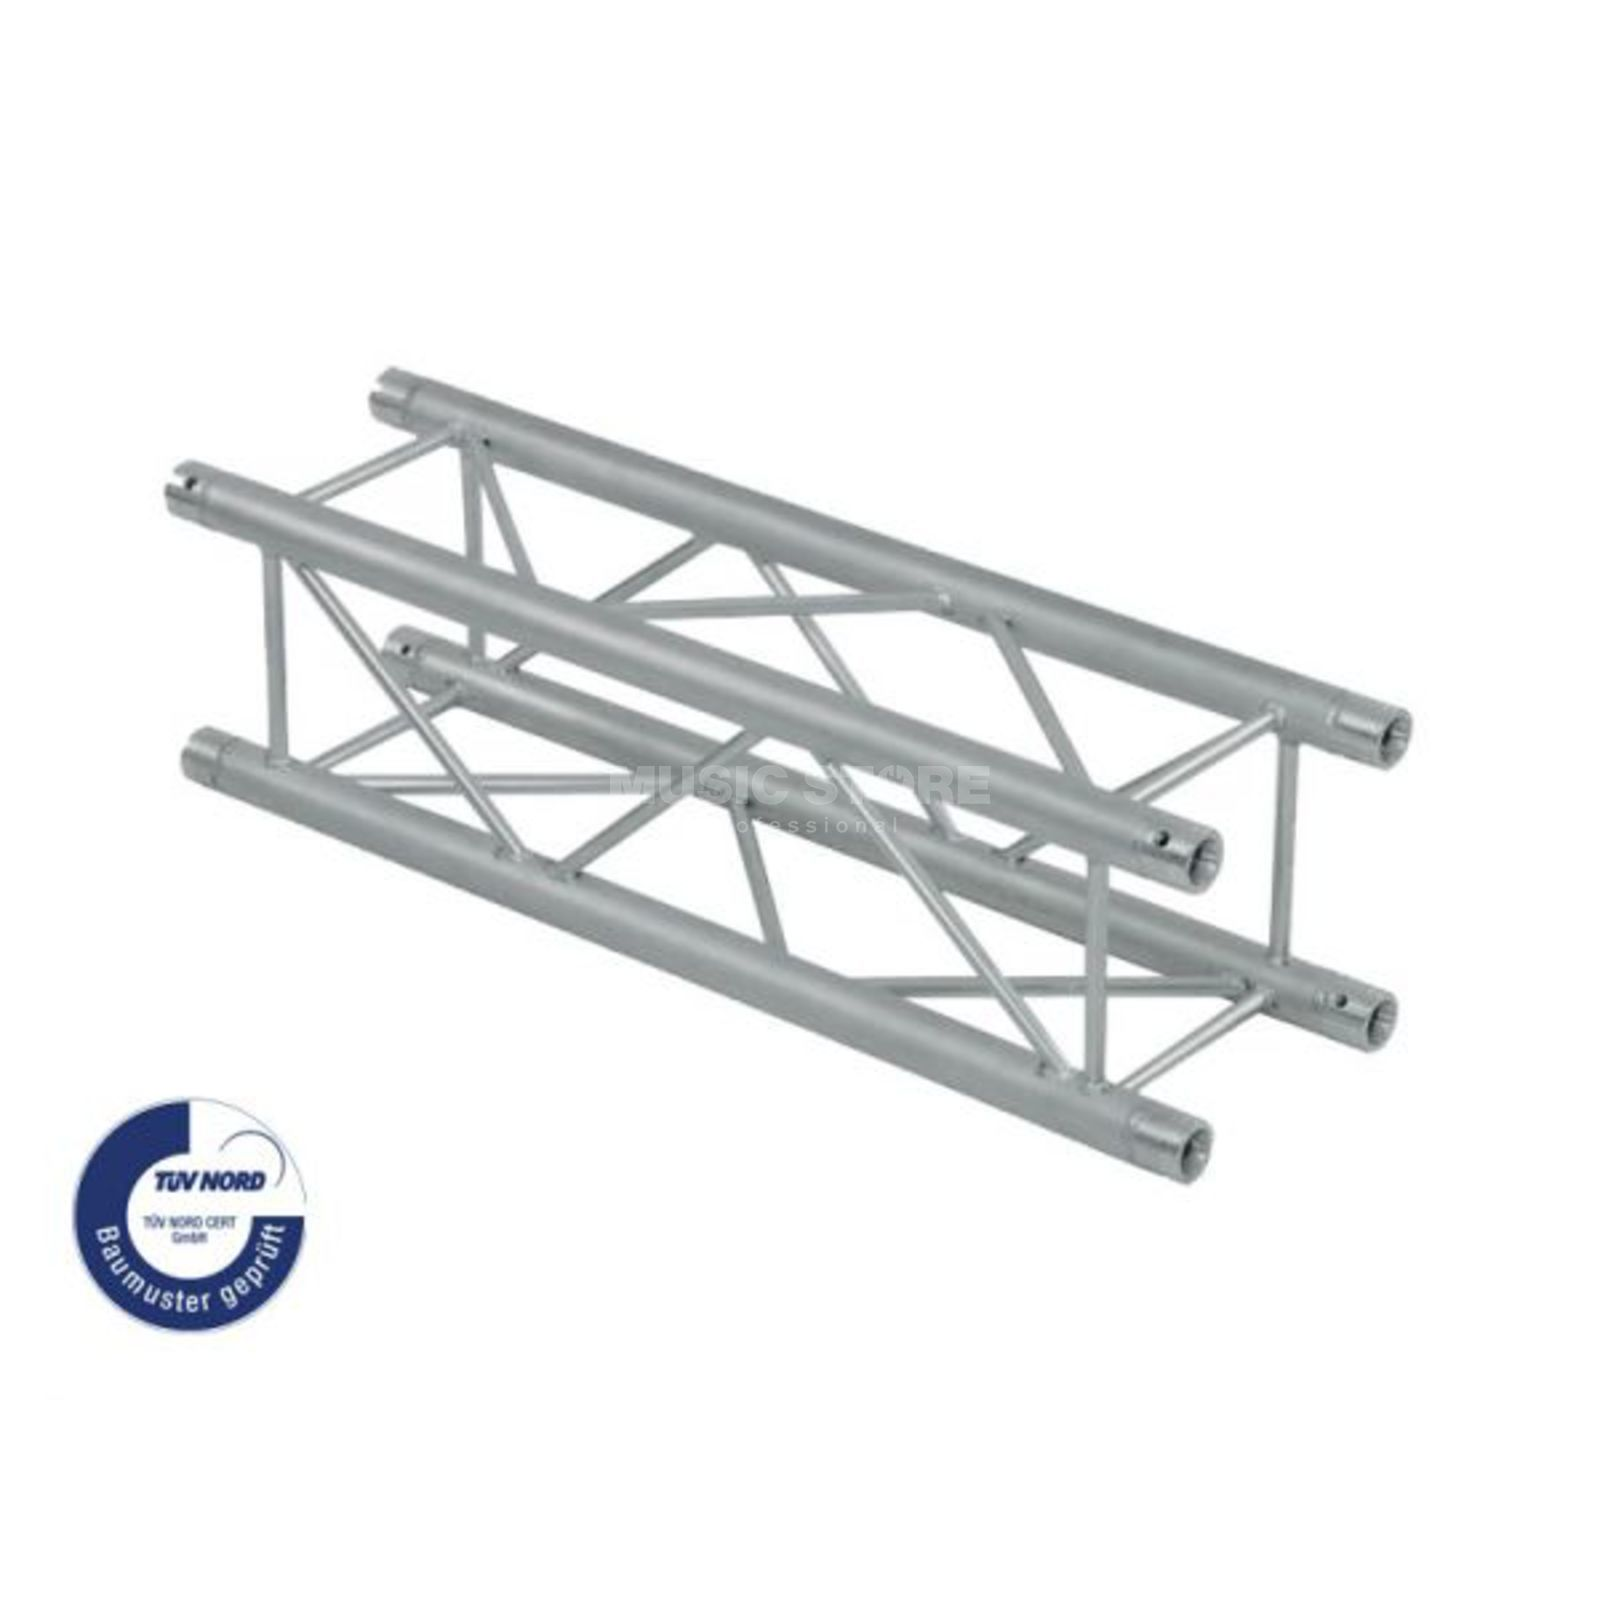 DURATRUSS DT 34-500, 4-Point Truss 5,0 m incl.  Conical Coupler Produktbillede